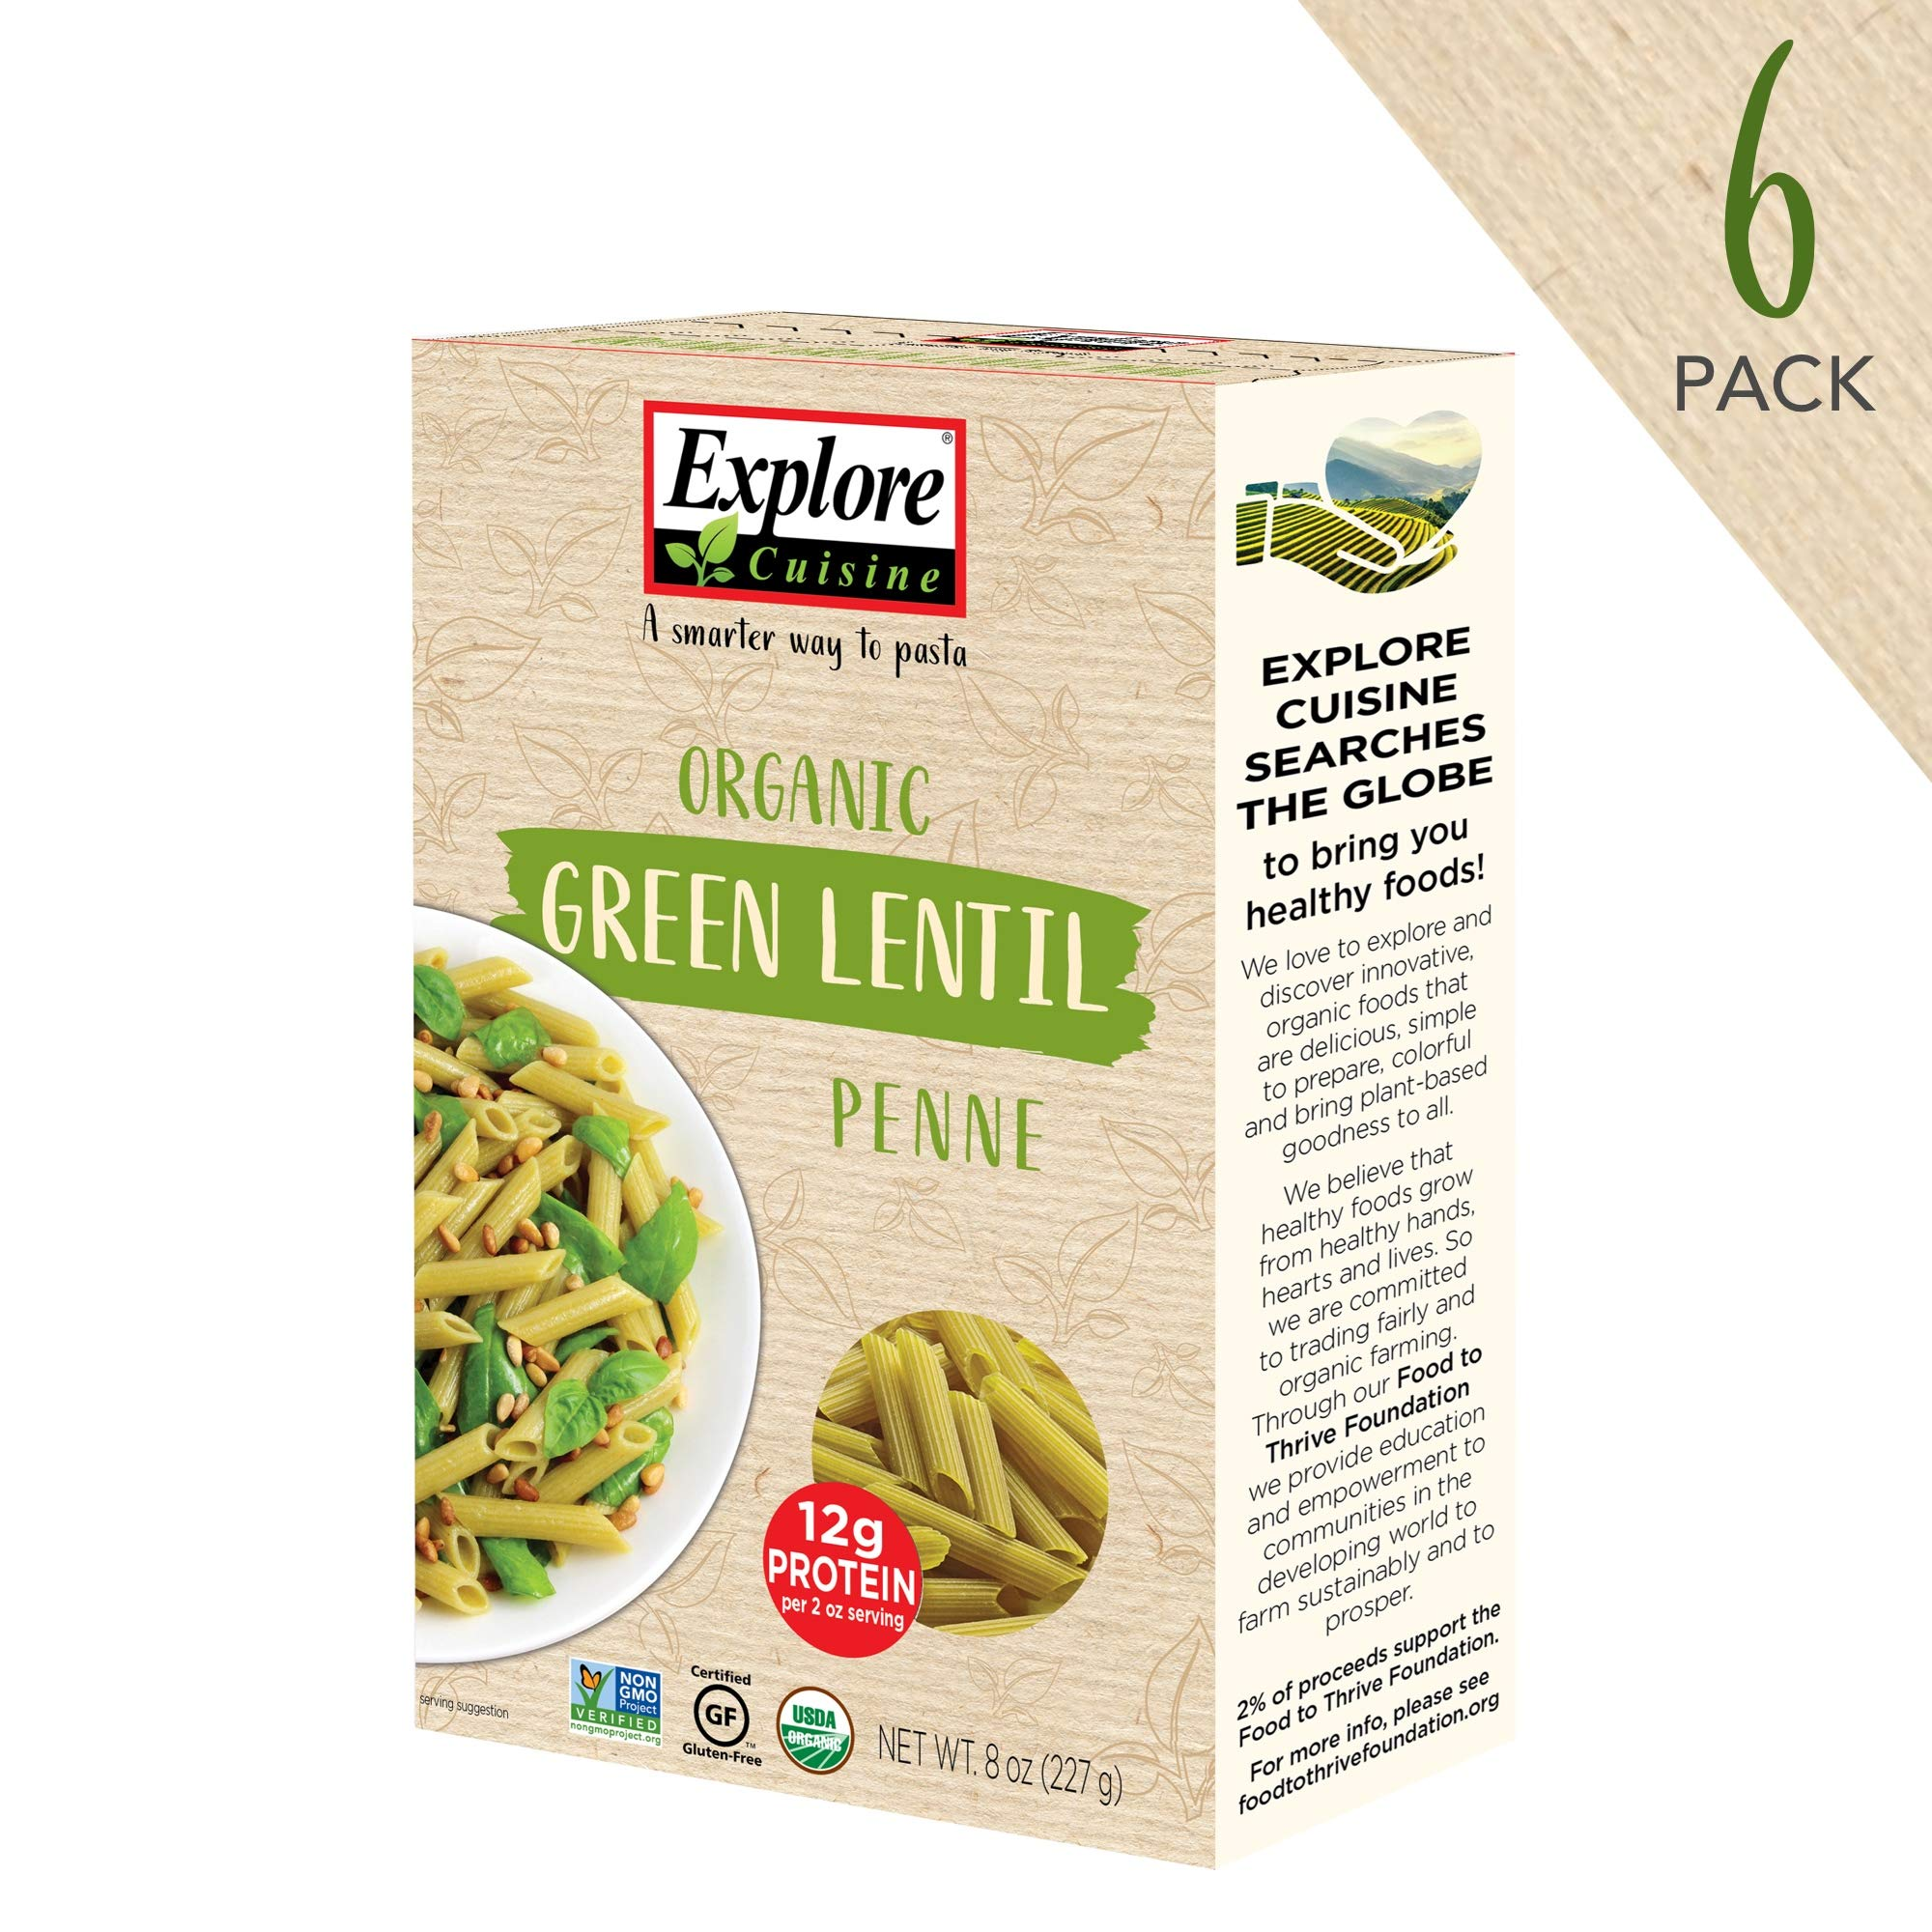 Explore Cuisine Organic Green Lentil Penne (6 Pack) - 8 oz - High Protein, Gluten Free Pasta, Easy to Make - USDA Certified Organic, Vegan, Kosher, Non GMO - 24 Total Servings by Excusn